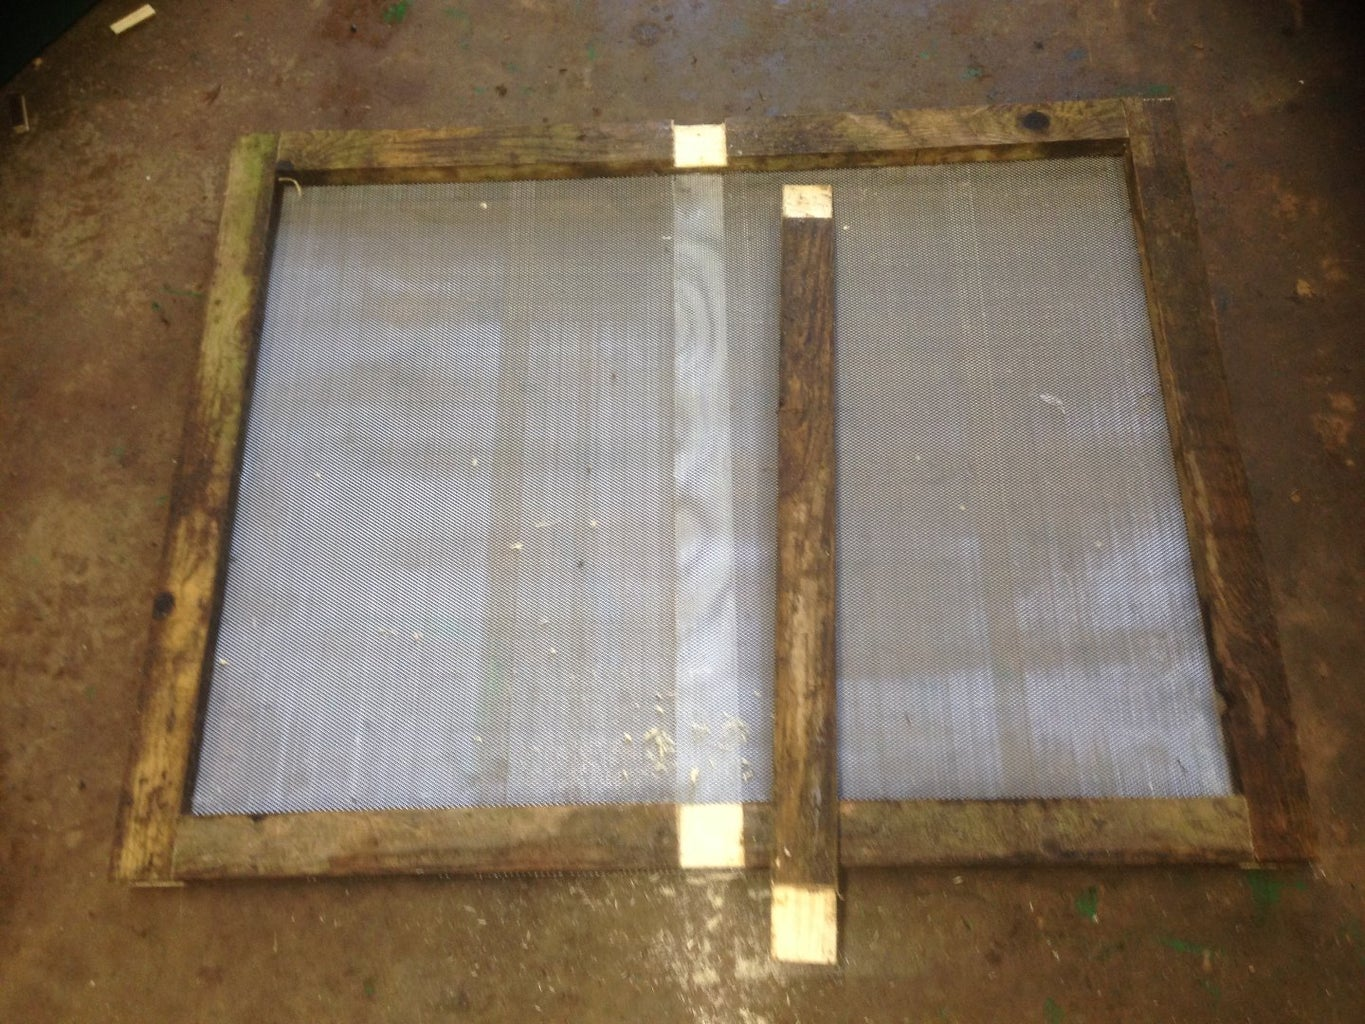 Making the Top Frame